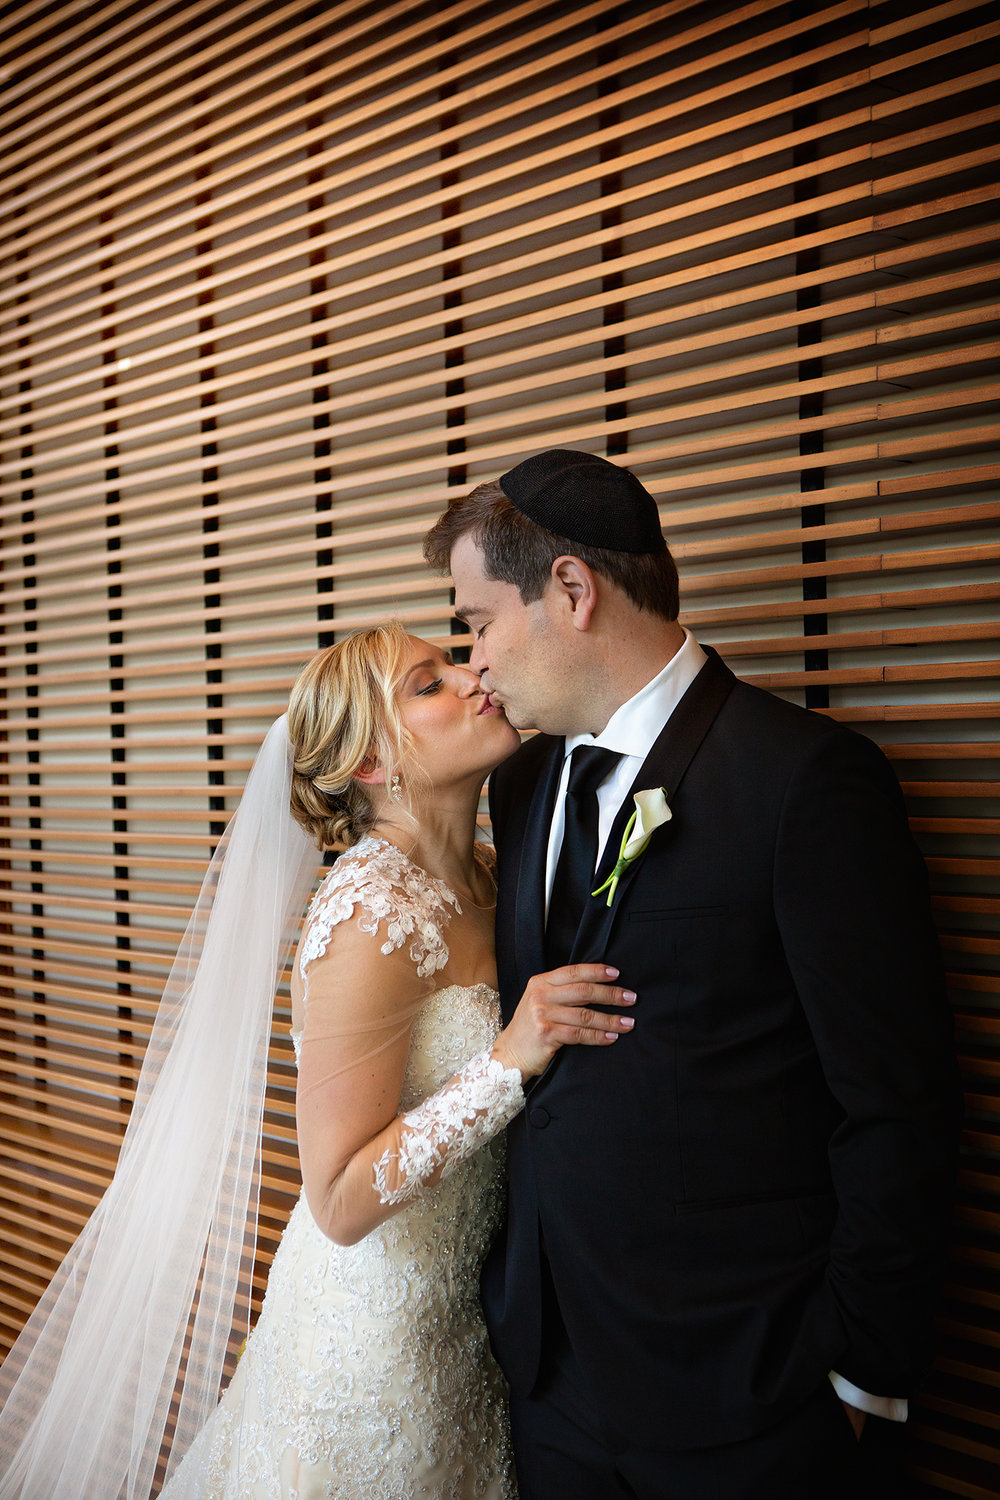 Westin Ft Lauderdale Wedding 3.jpg